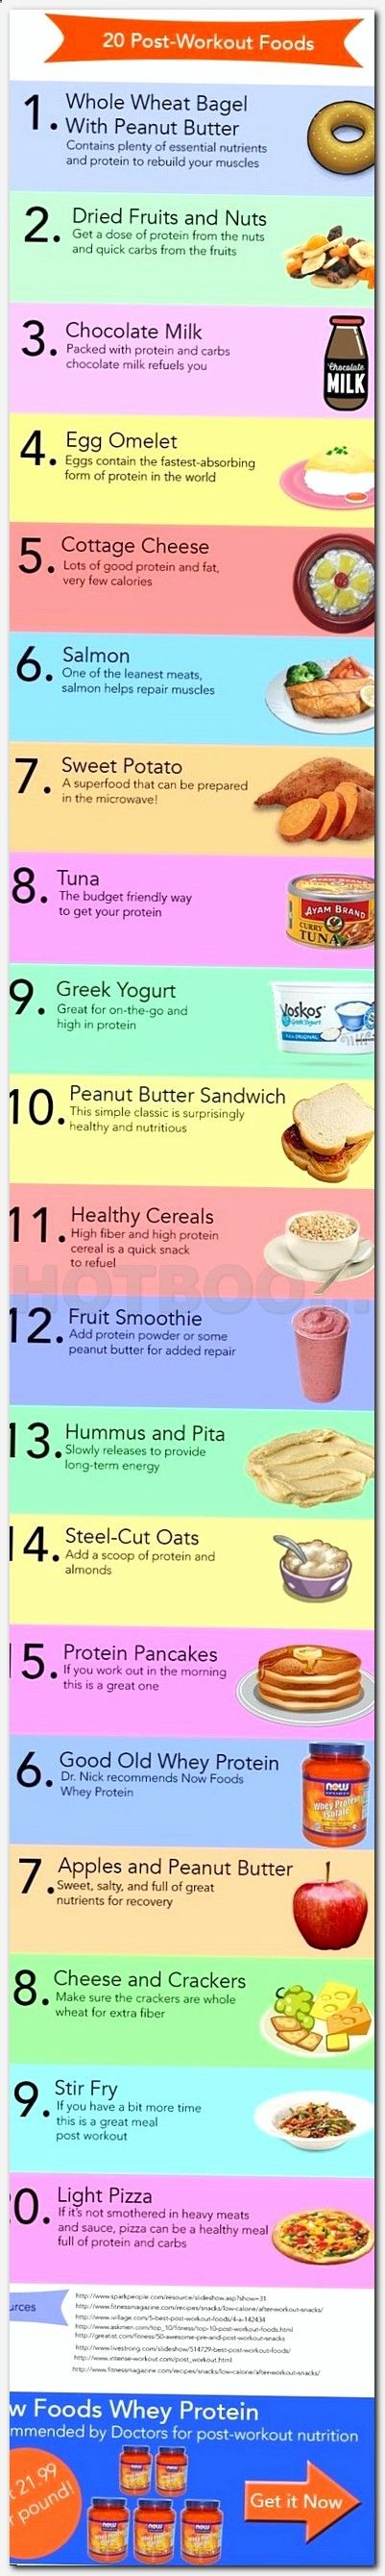 fast weight loss tips for women, exercises for the gym to lose weight, zone diet calculator crossfit, how to lower your body fat, raw food diet cancer, iki gunluk sok diyet, very healthy snacks, good foods to burn fat, mayo clinic healthy eating, eating c